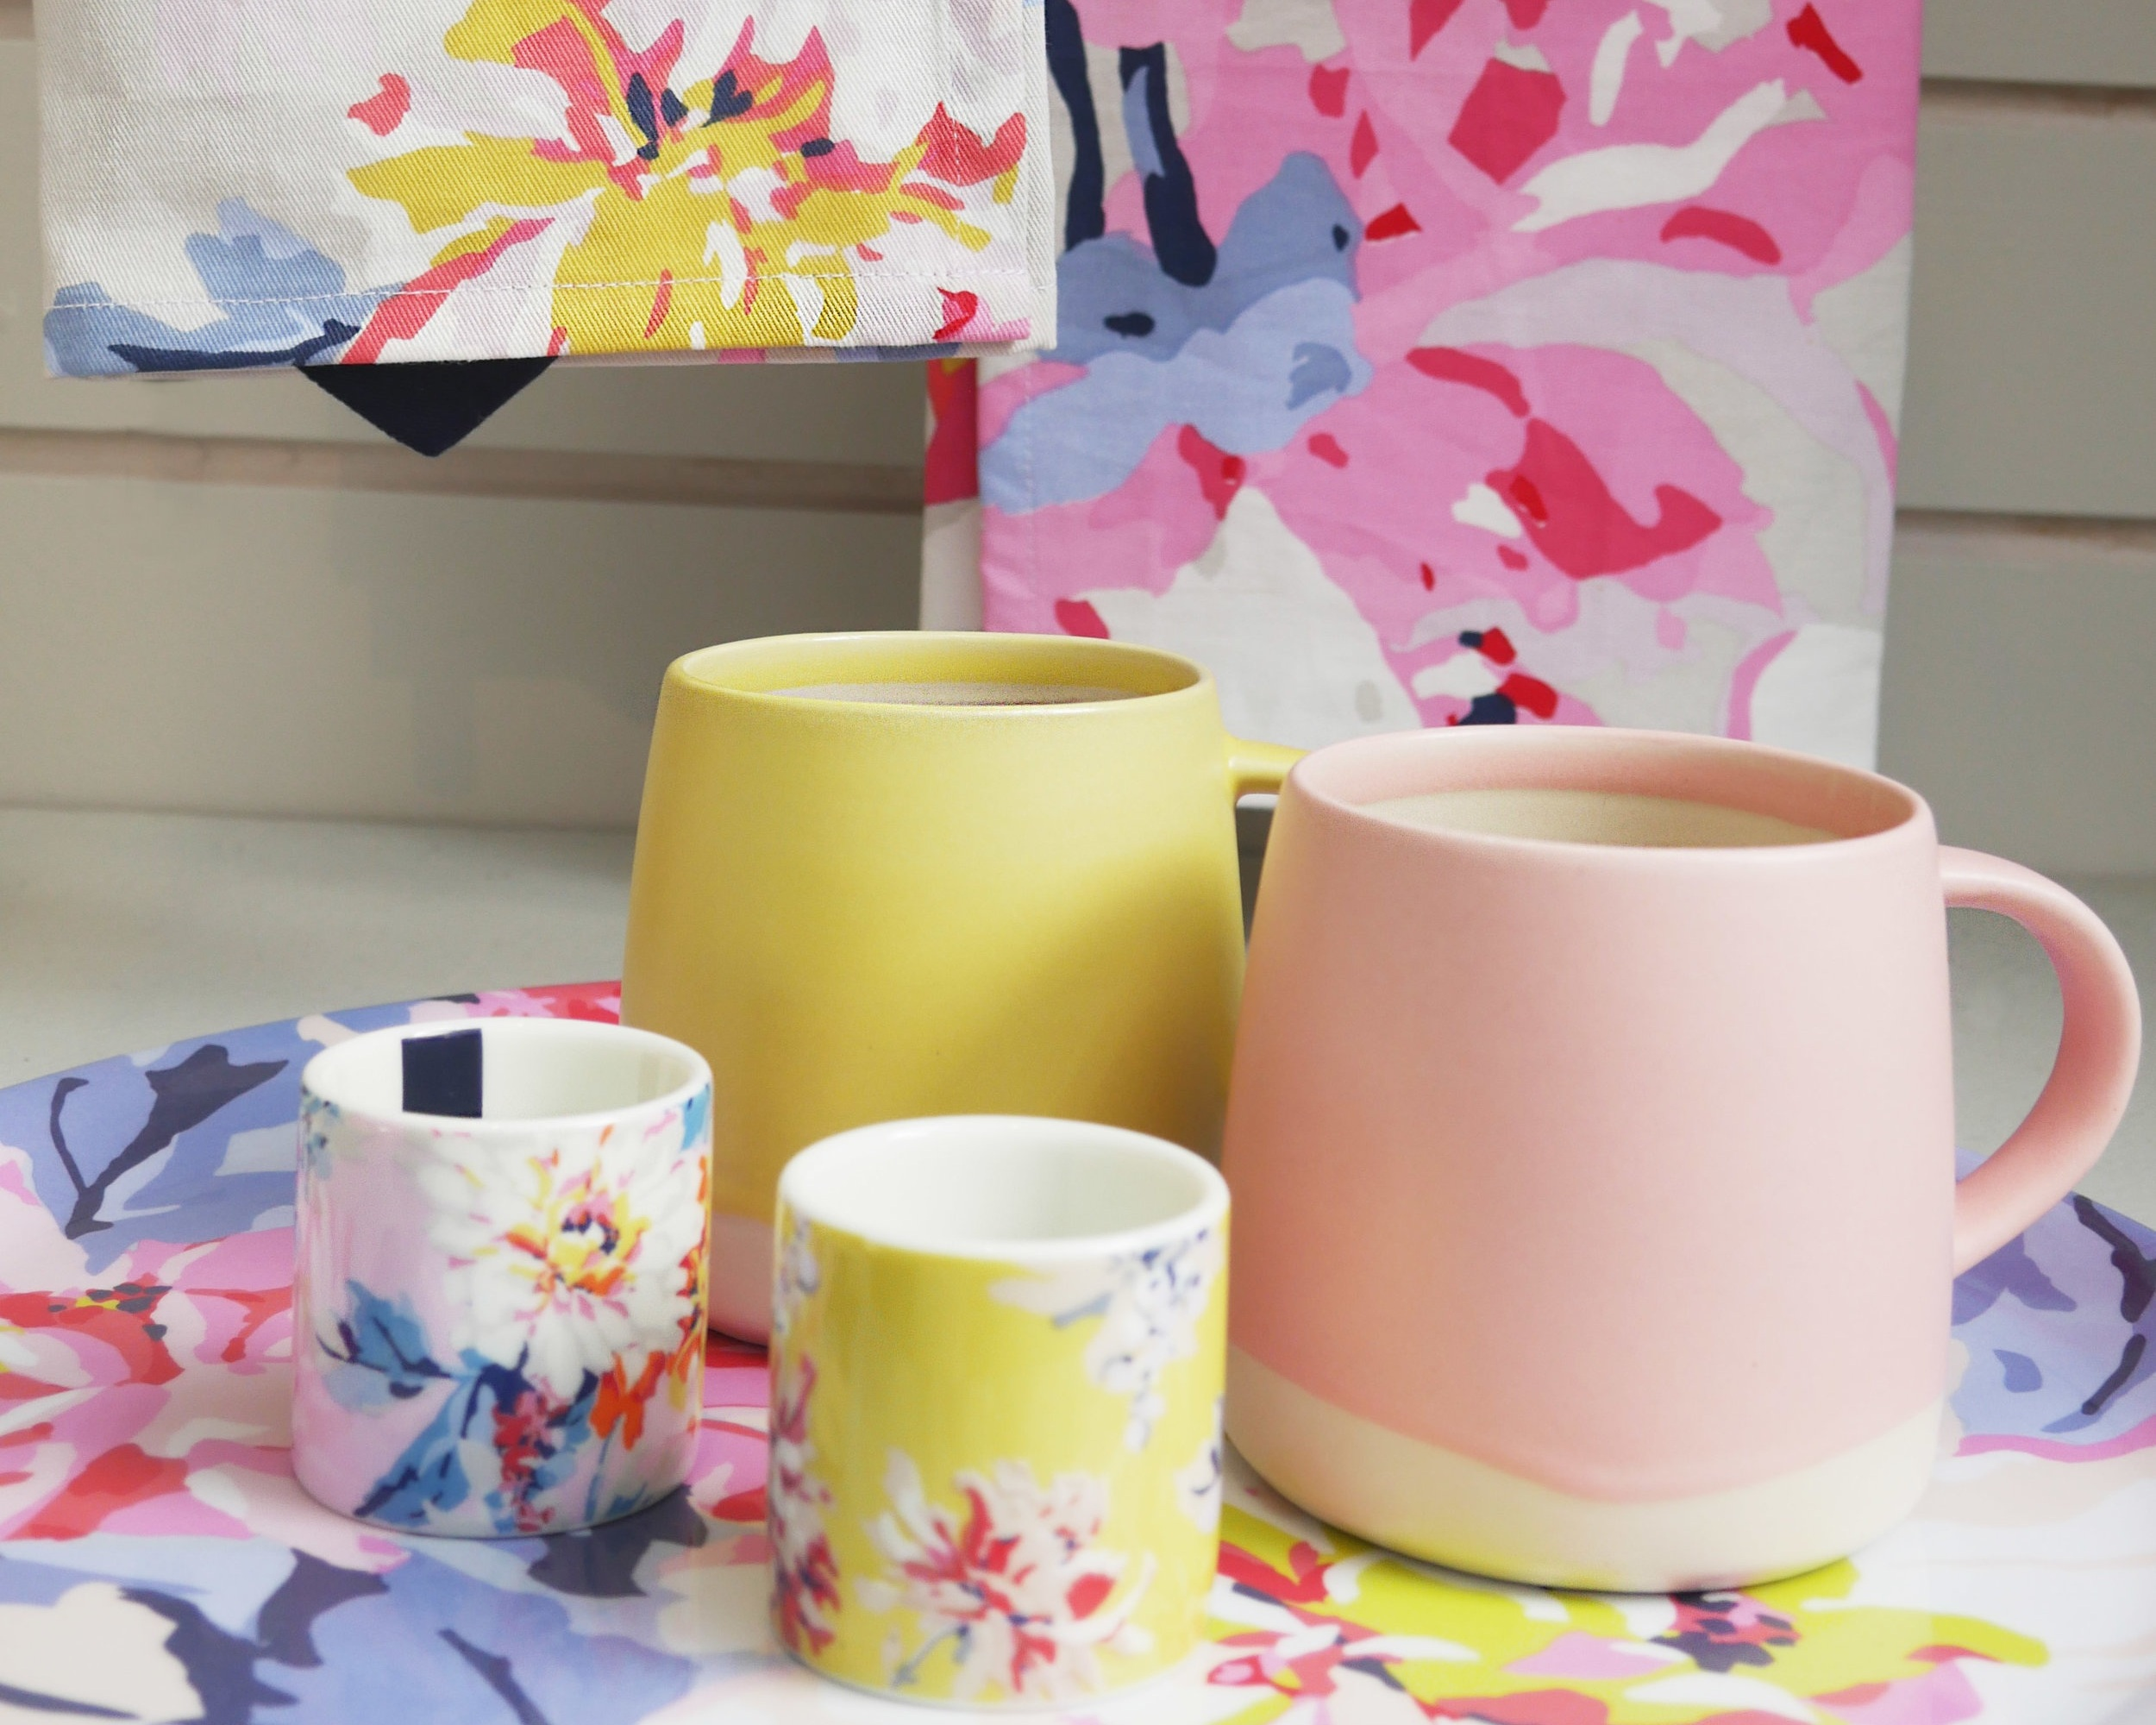 Bring the sunshine indoors - Bring the sunshine indoors with some of our gorgeous Joules homeware!